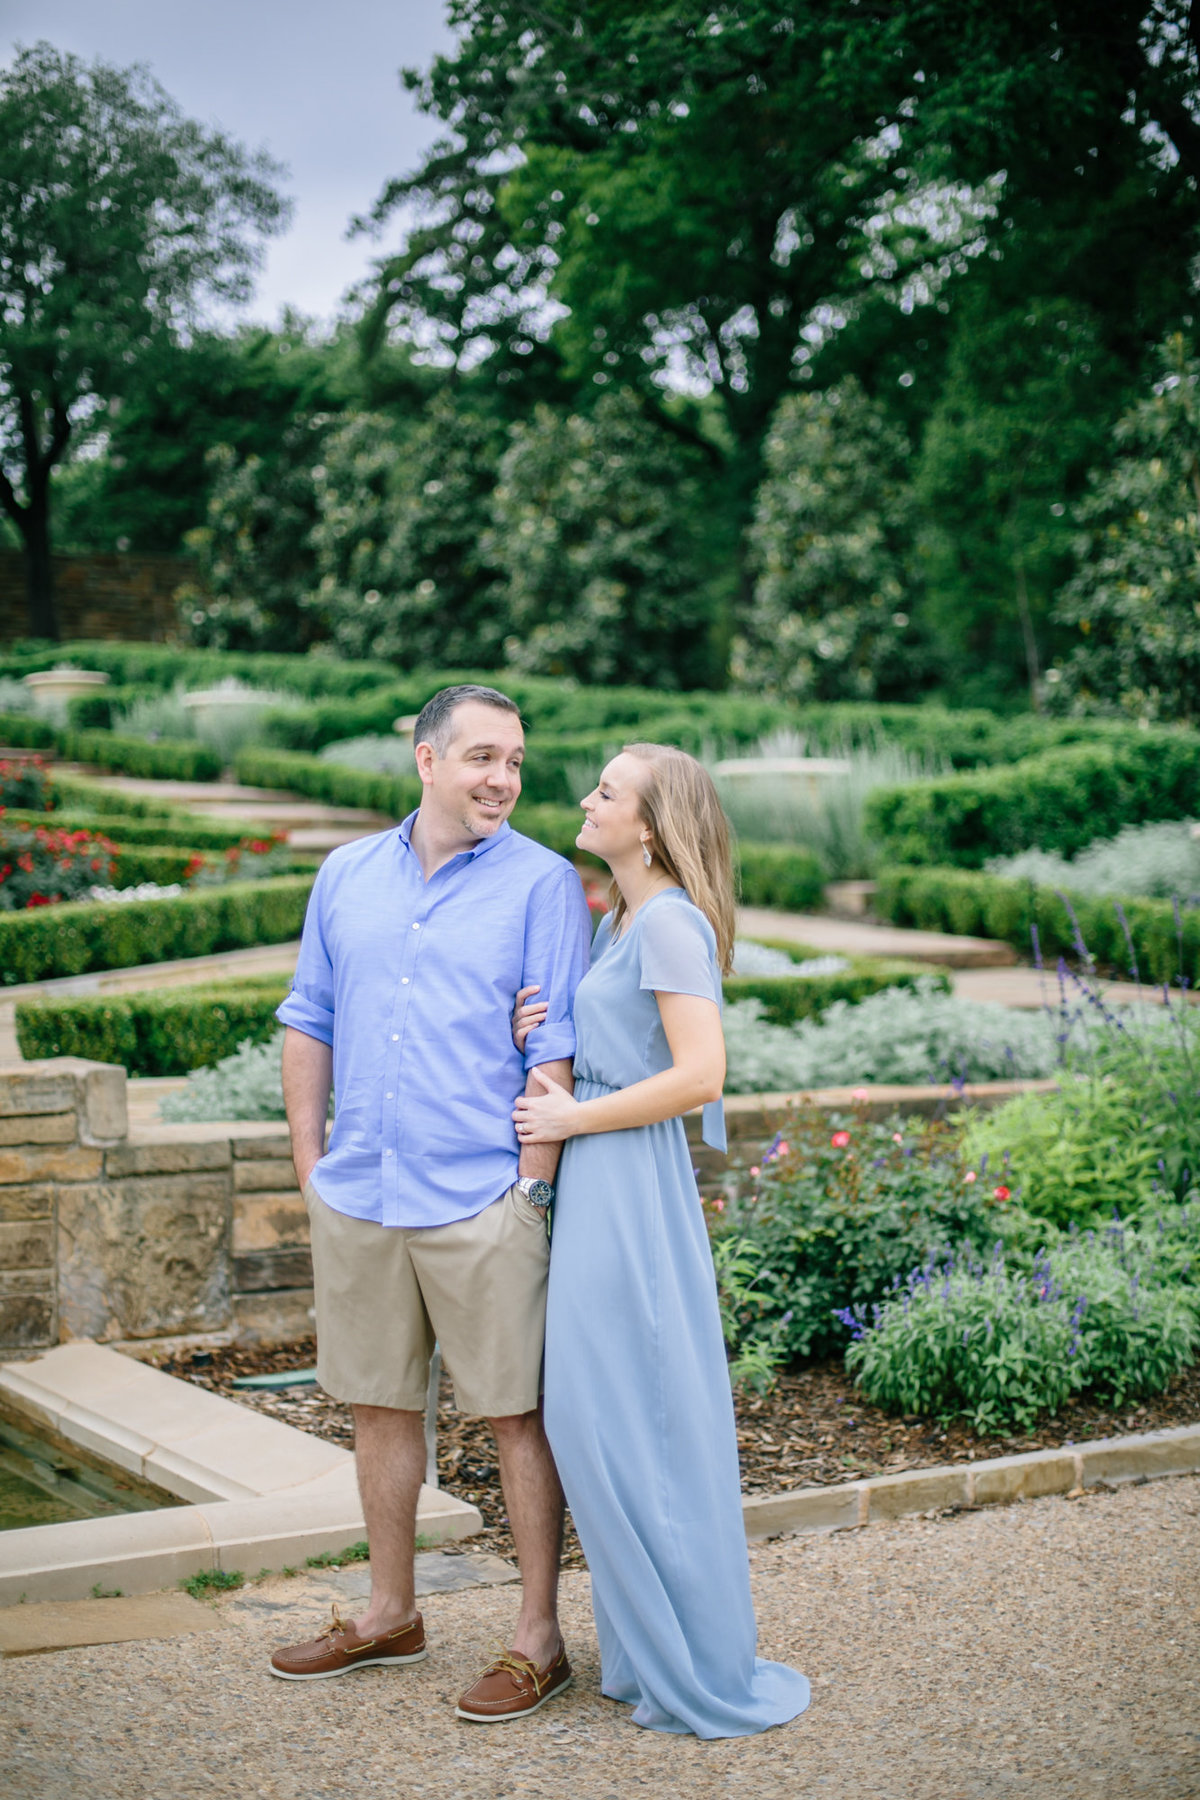 Fort-Worth-Botanical-Graden-Engagement-by-Dallas-Wedding-Photogrpher-Julia-Sharapova-28